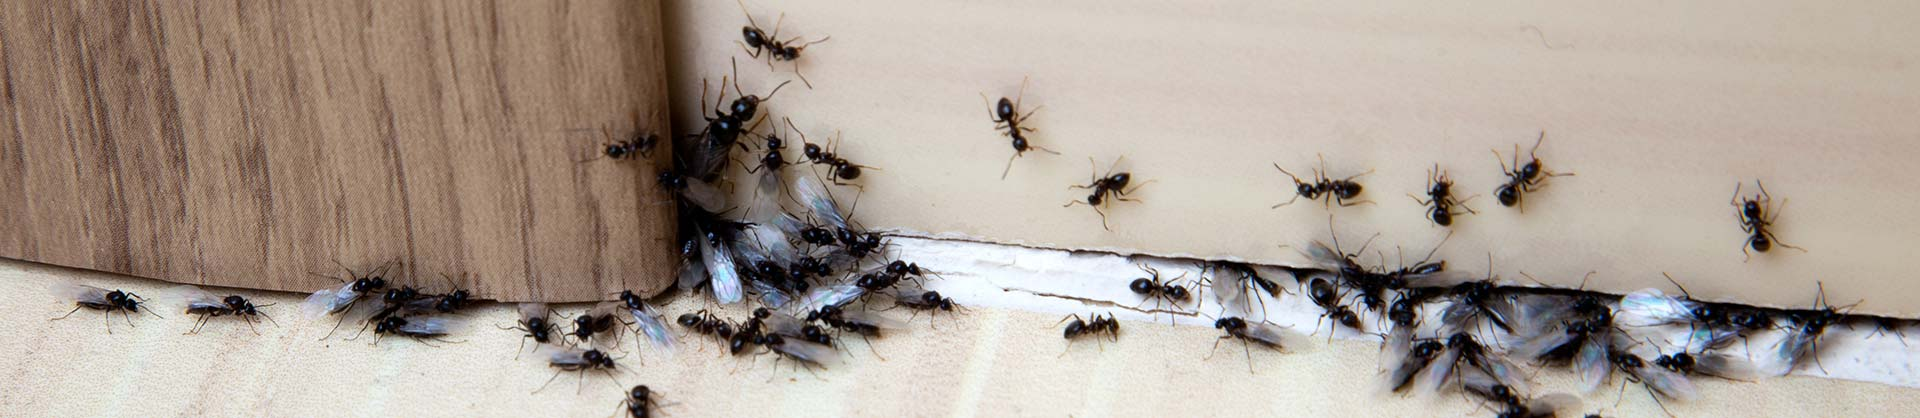 Ant Pest Control For Newcastle, Lake Macquarie, Maitland, Cessnock, Singleton And Port Stephens